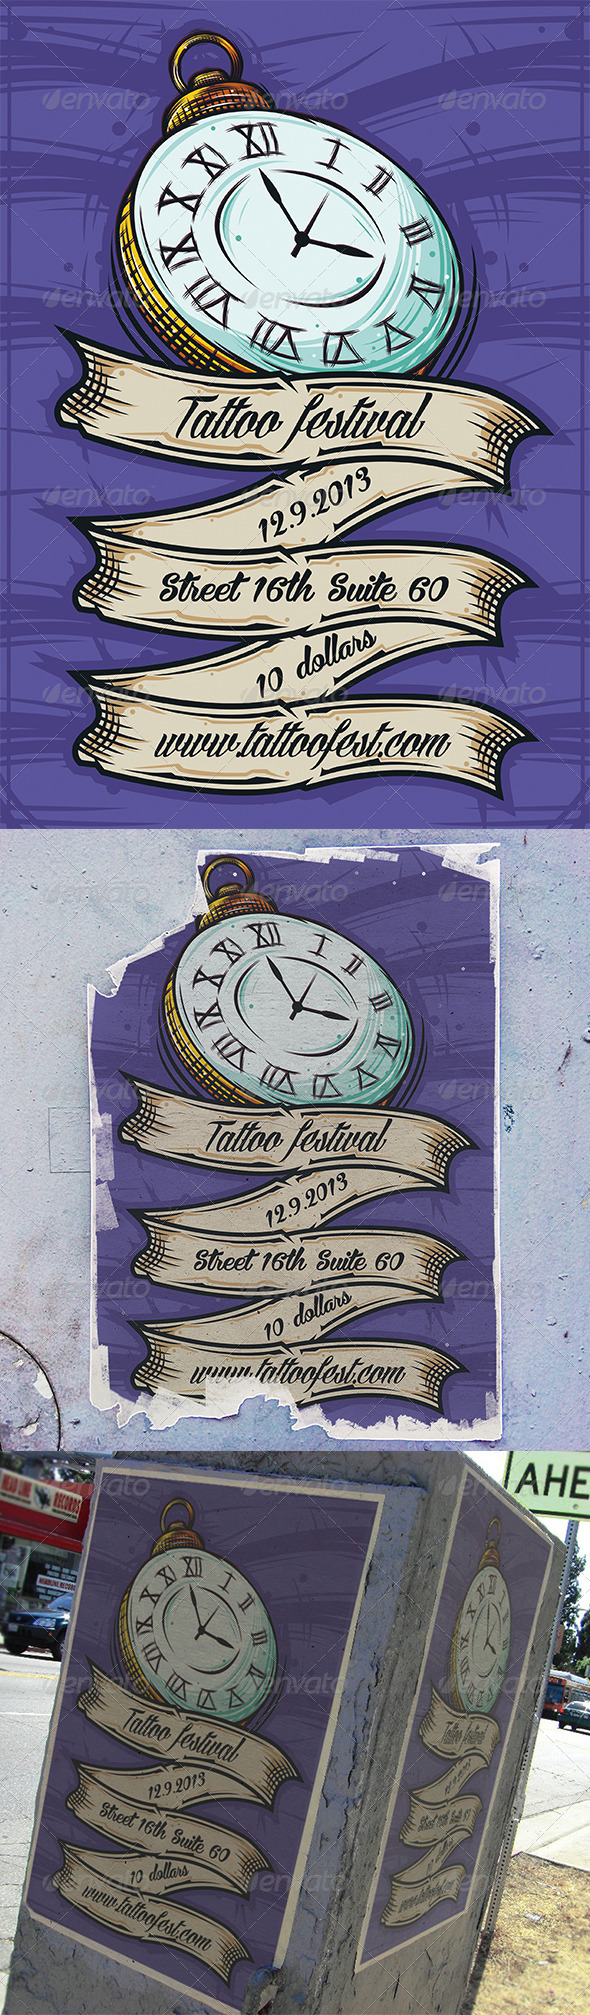 GraphicRiver Tattoo Convention Flyer 5616639